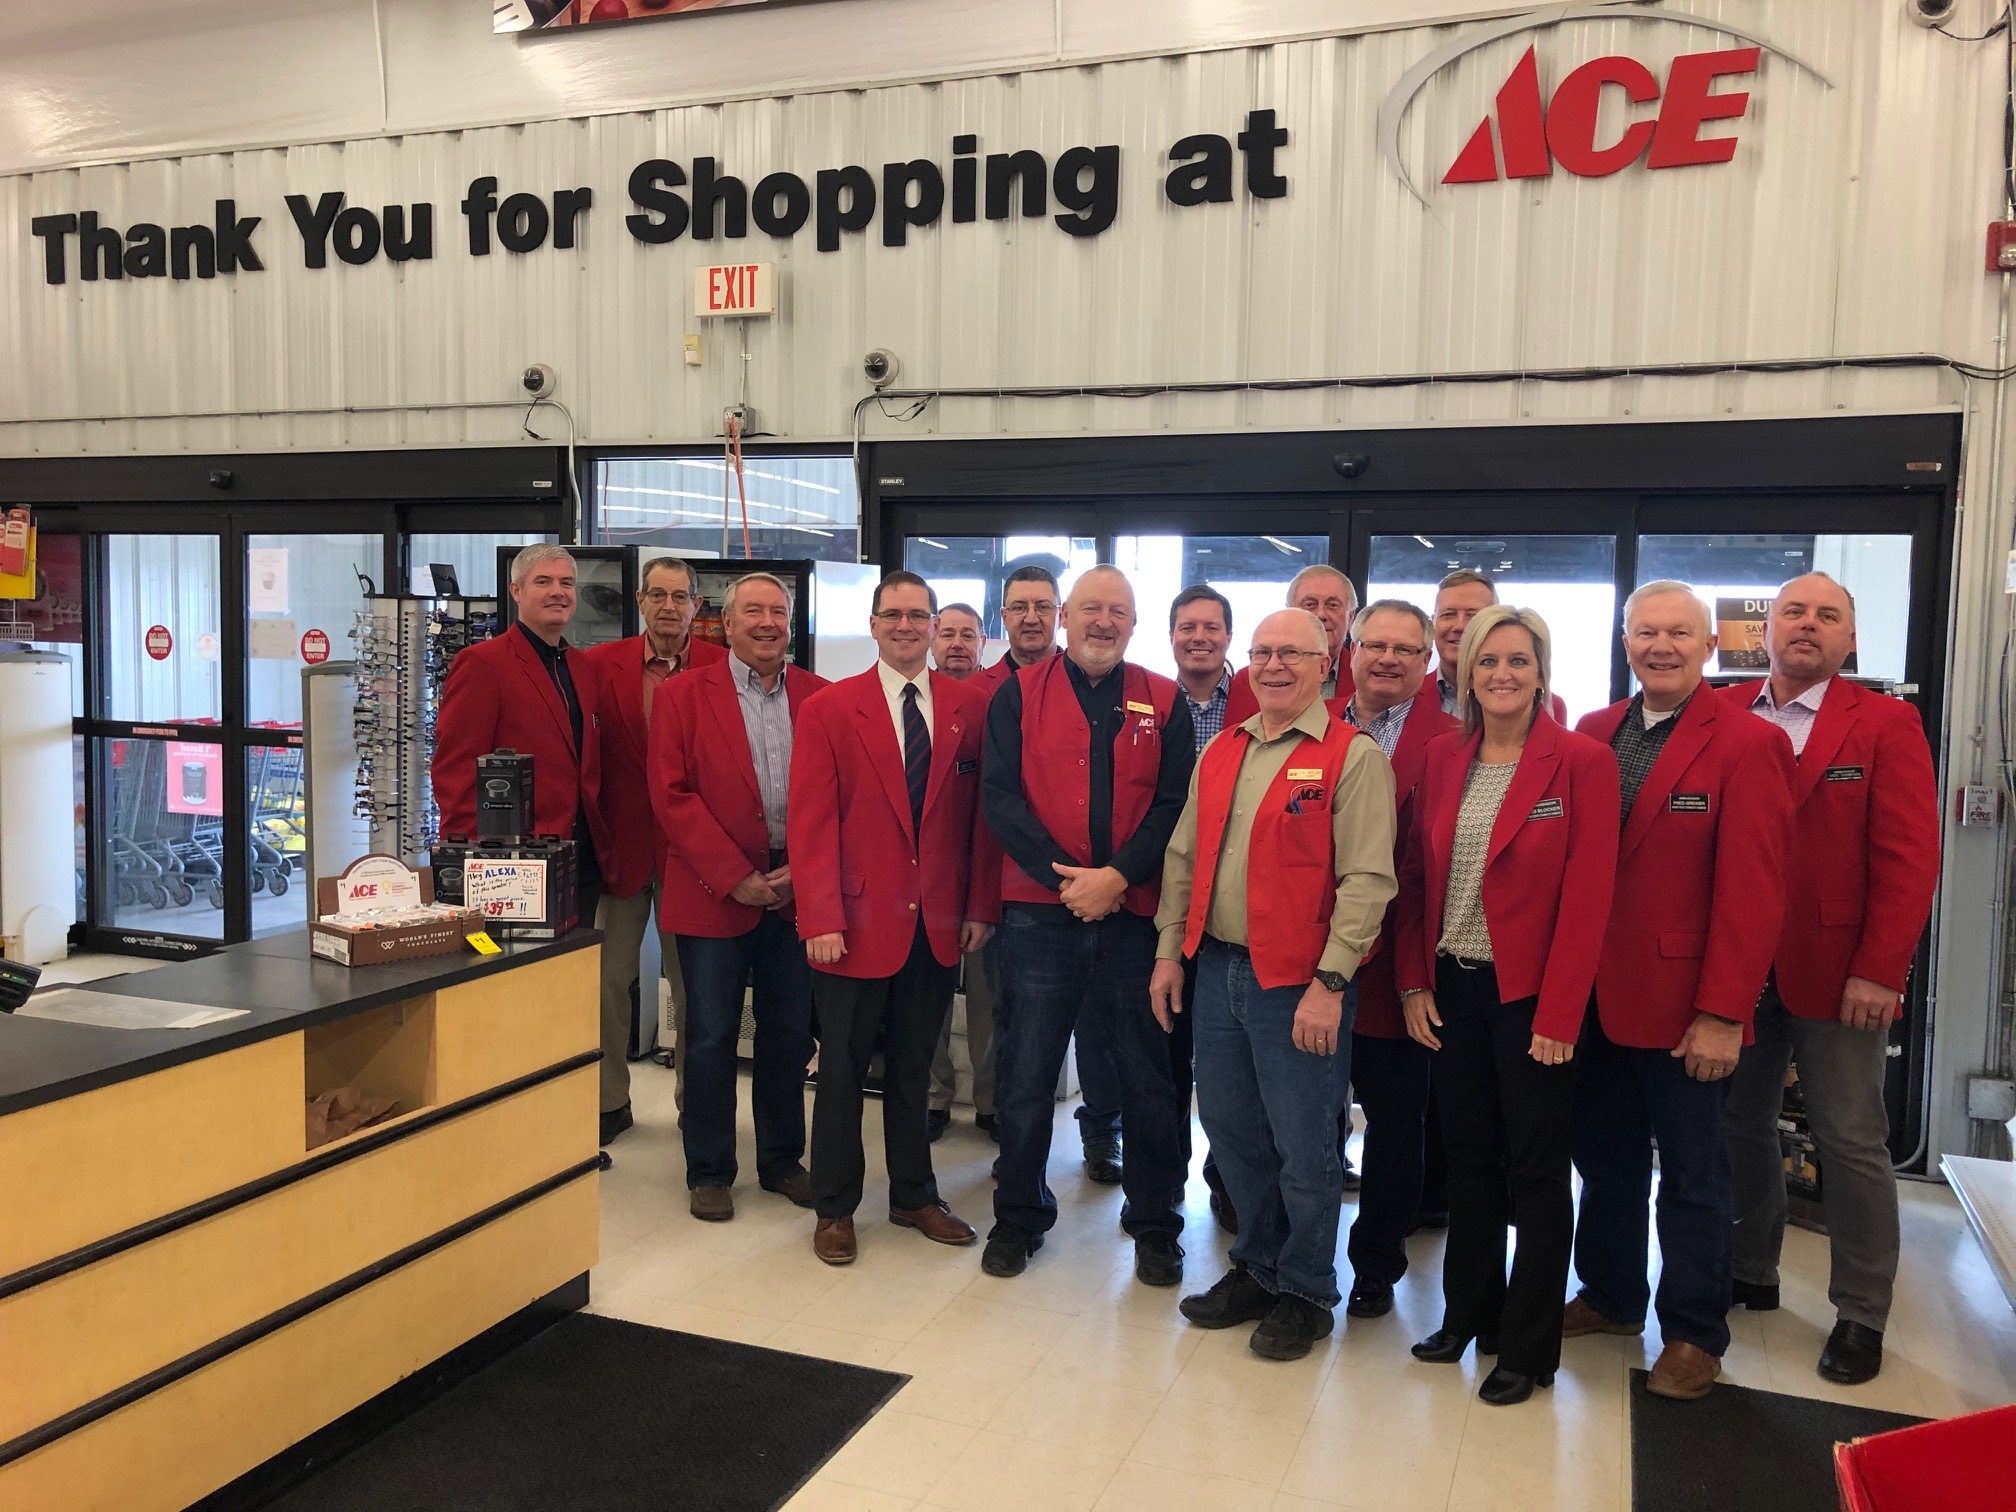 Chamber Ambassadors hosted a courtesy call with the staff of Ace Hardware (1735 SE Marshall Street) on February 4.